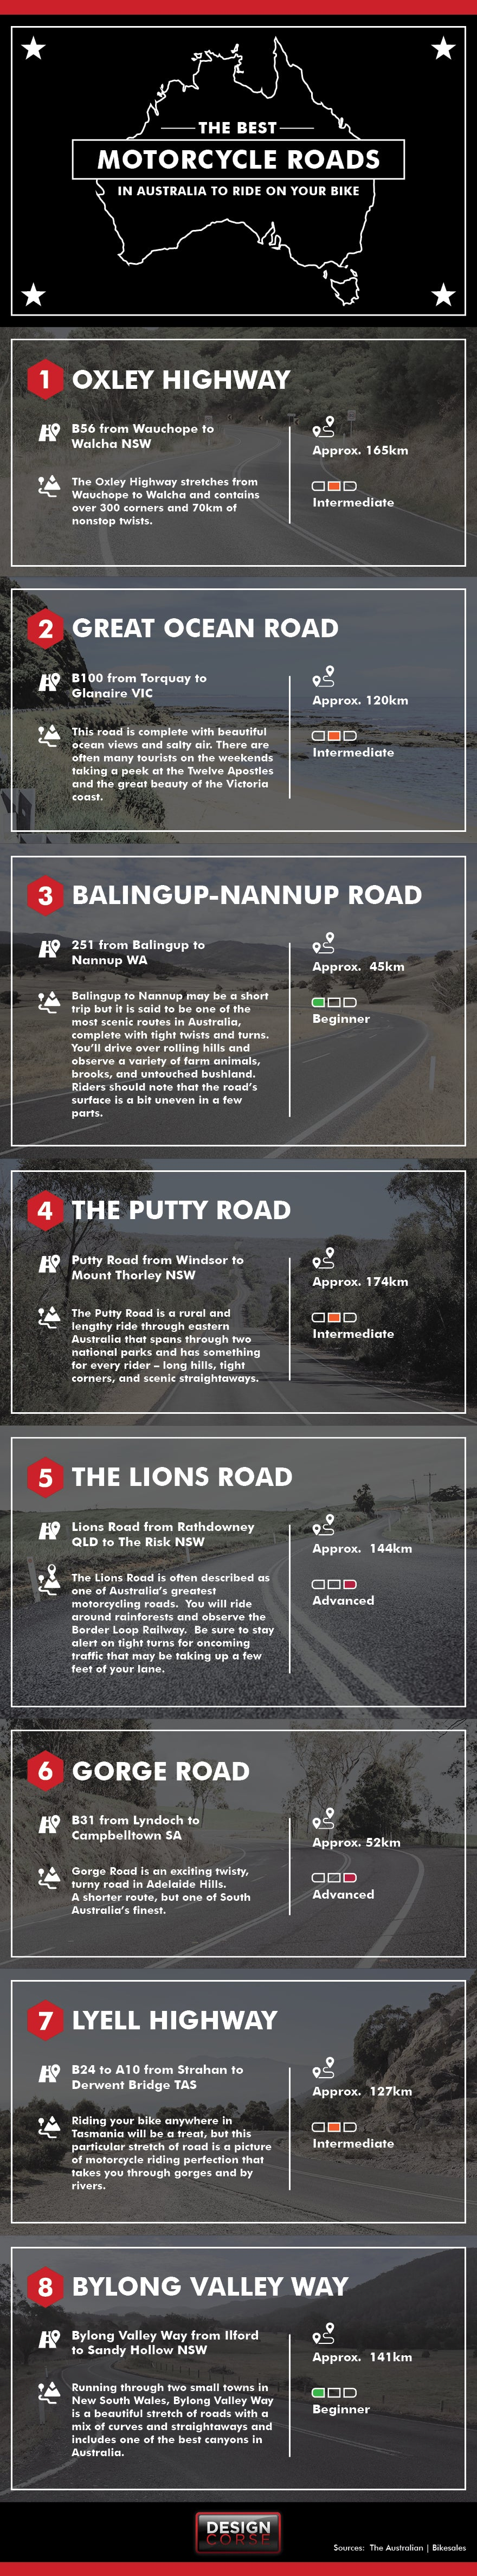 Best Motorcycle Roads in Australia - Micrographic